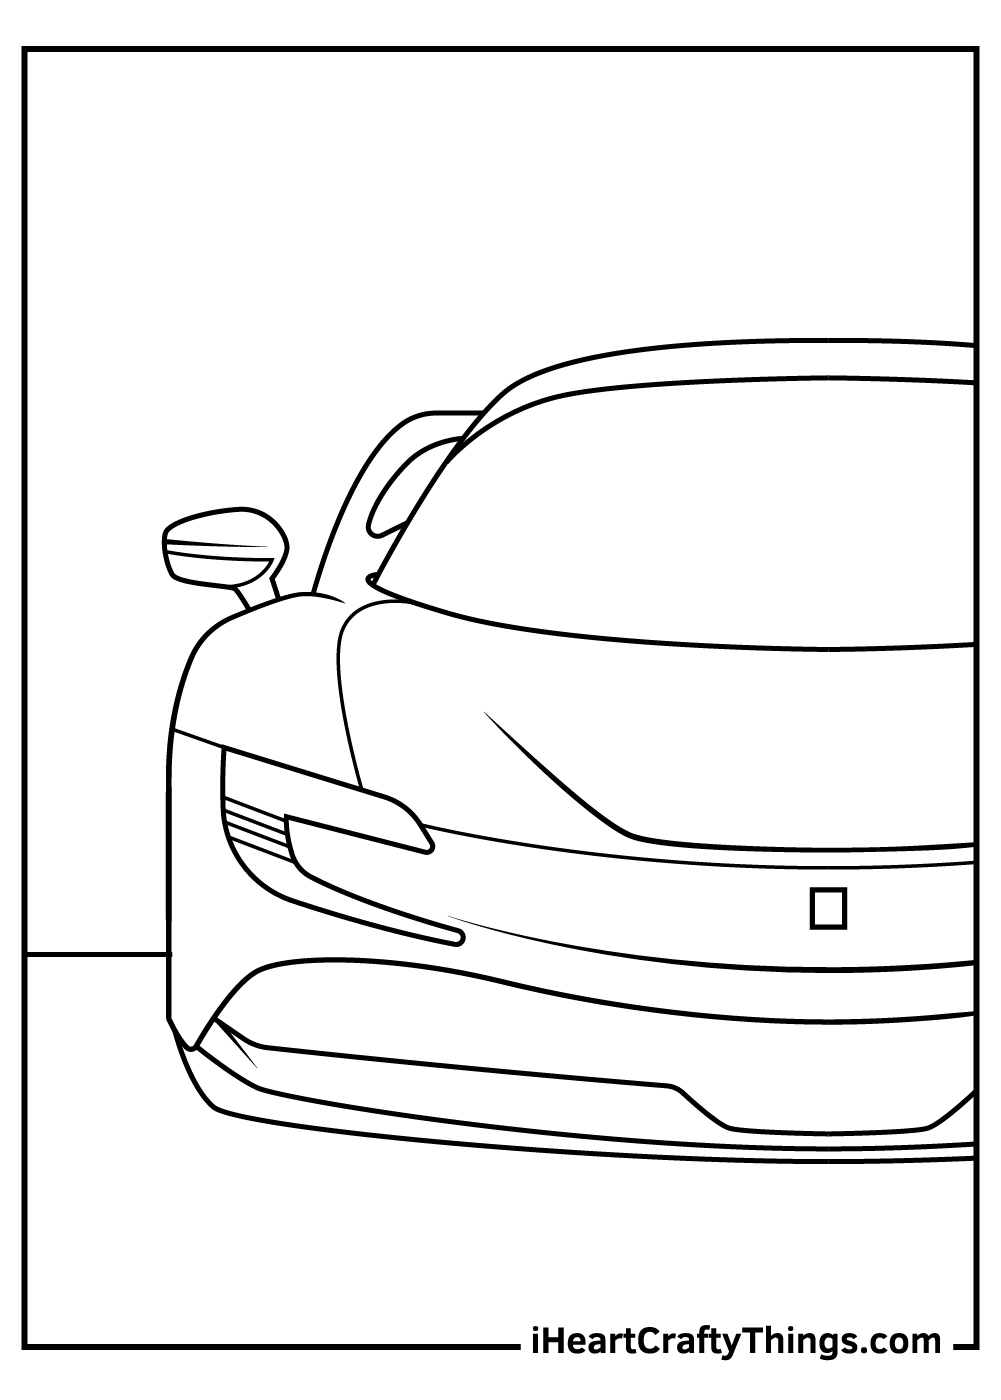 easy black and white ferrari coloring pages free download